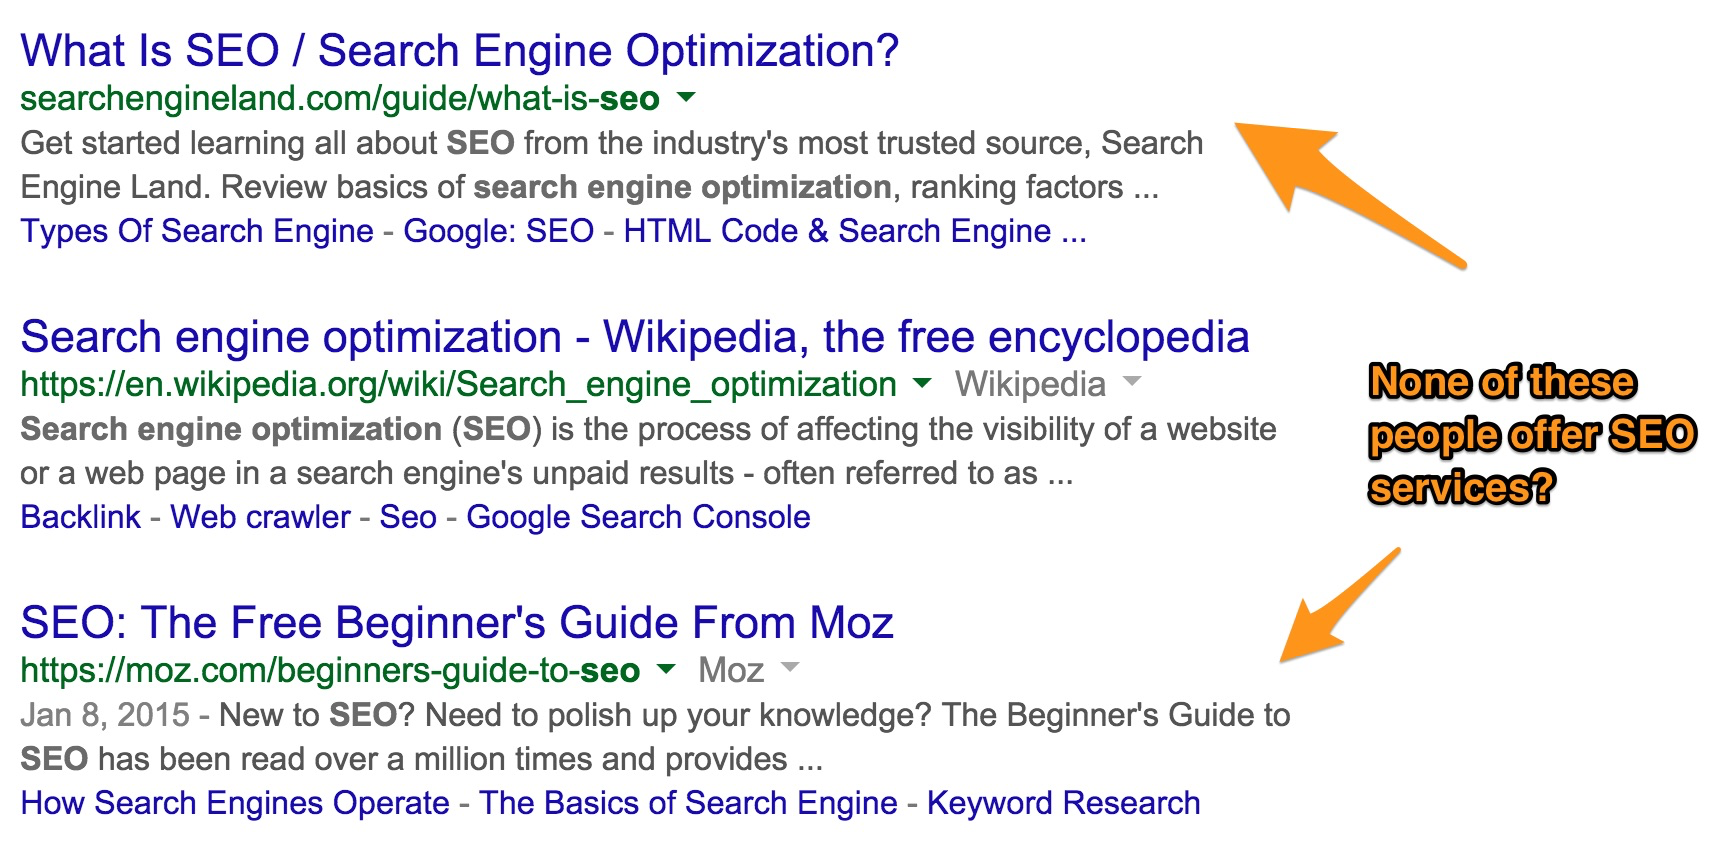 Results for SEO